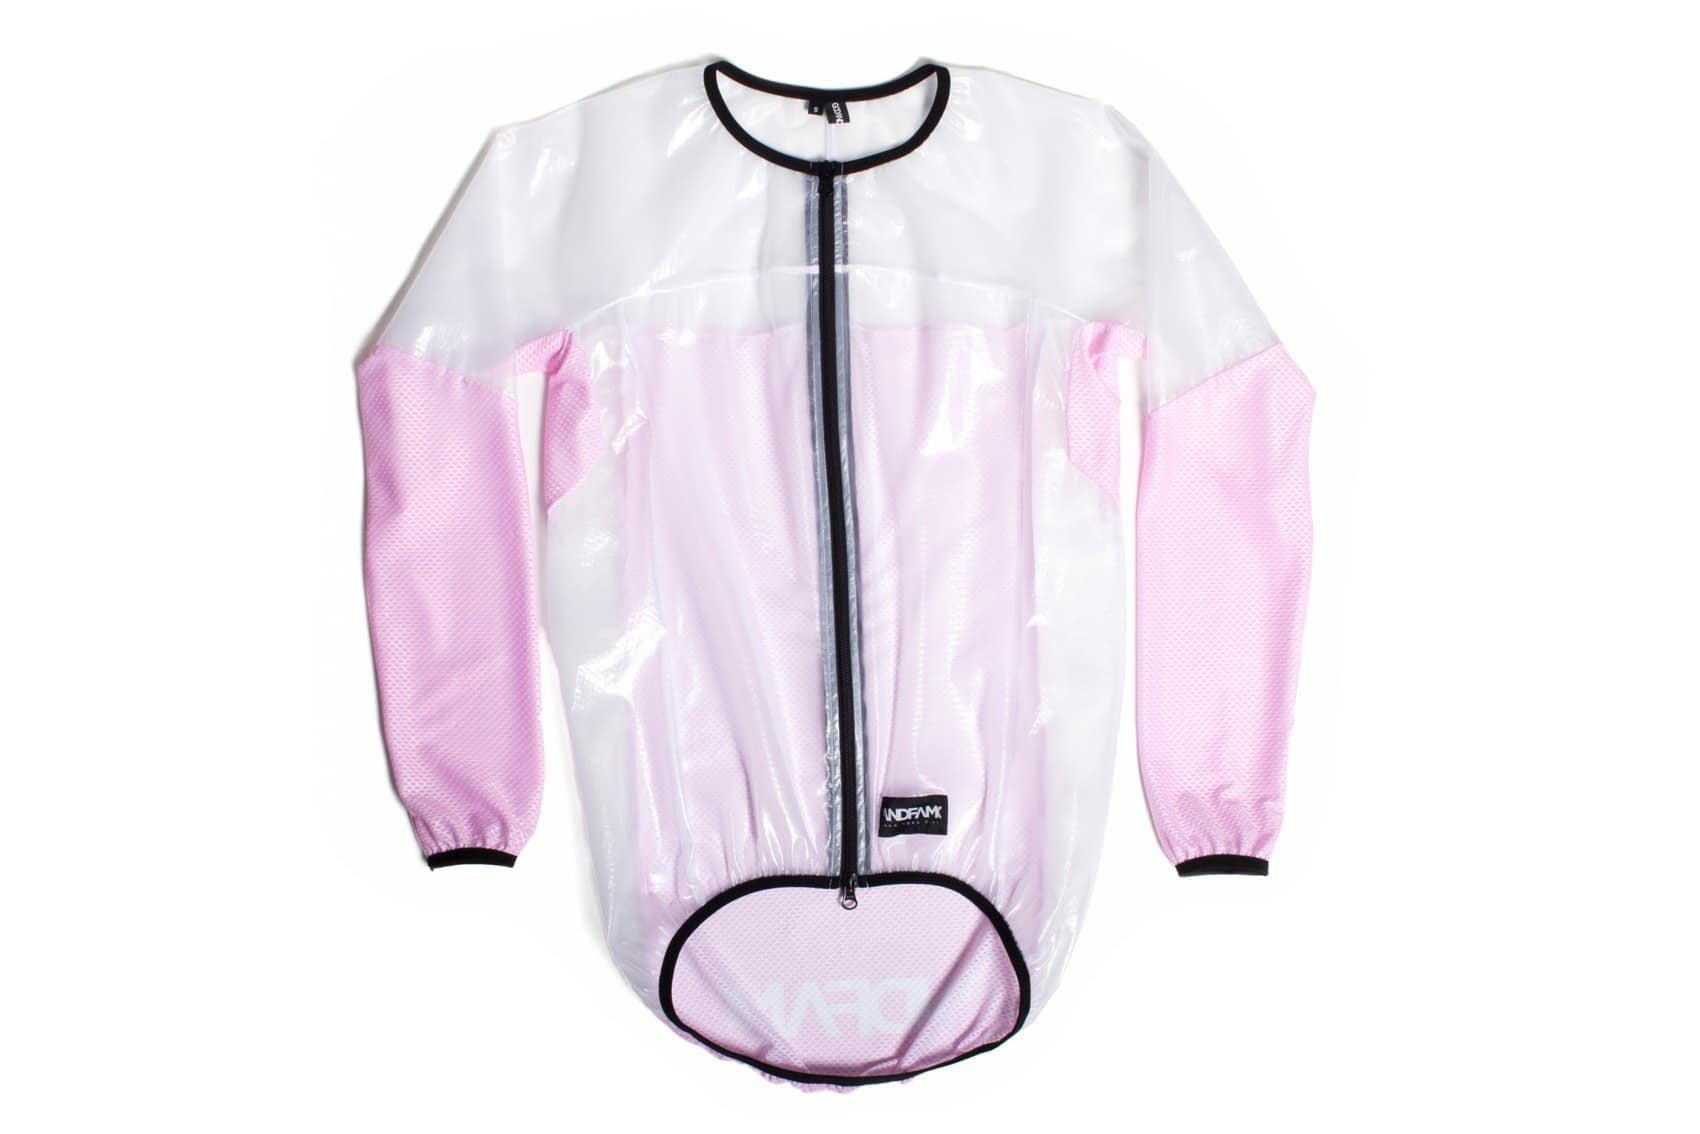 GOD & FAMOUS SS3 Jacket (pink)